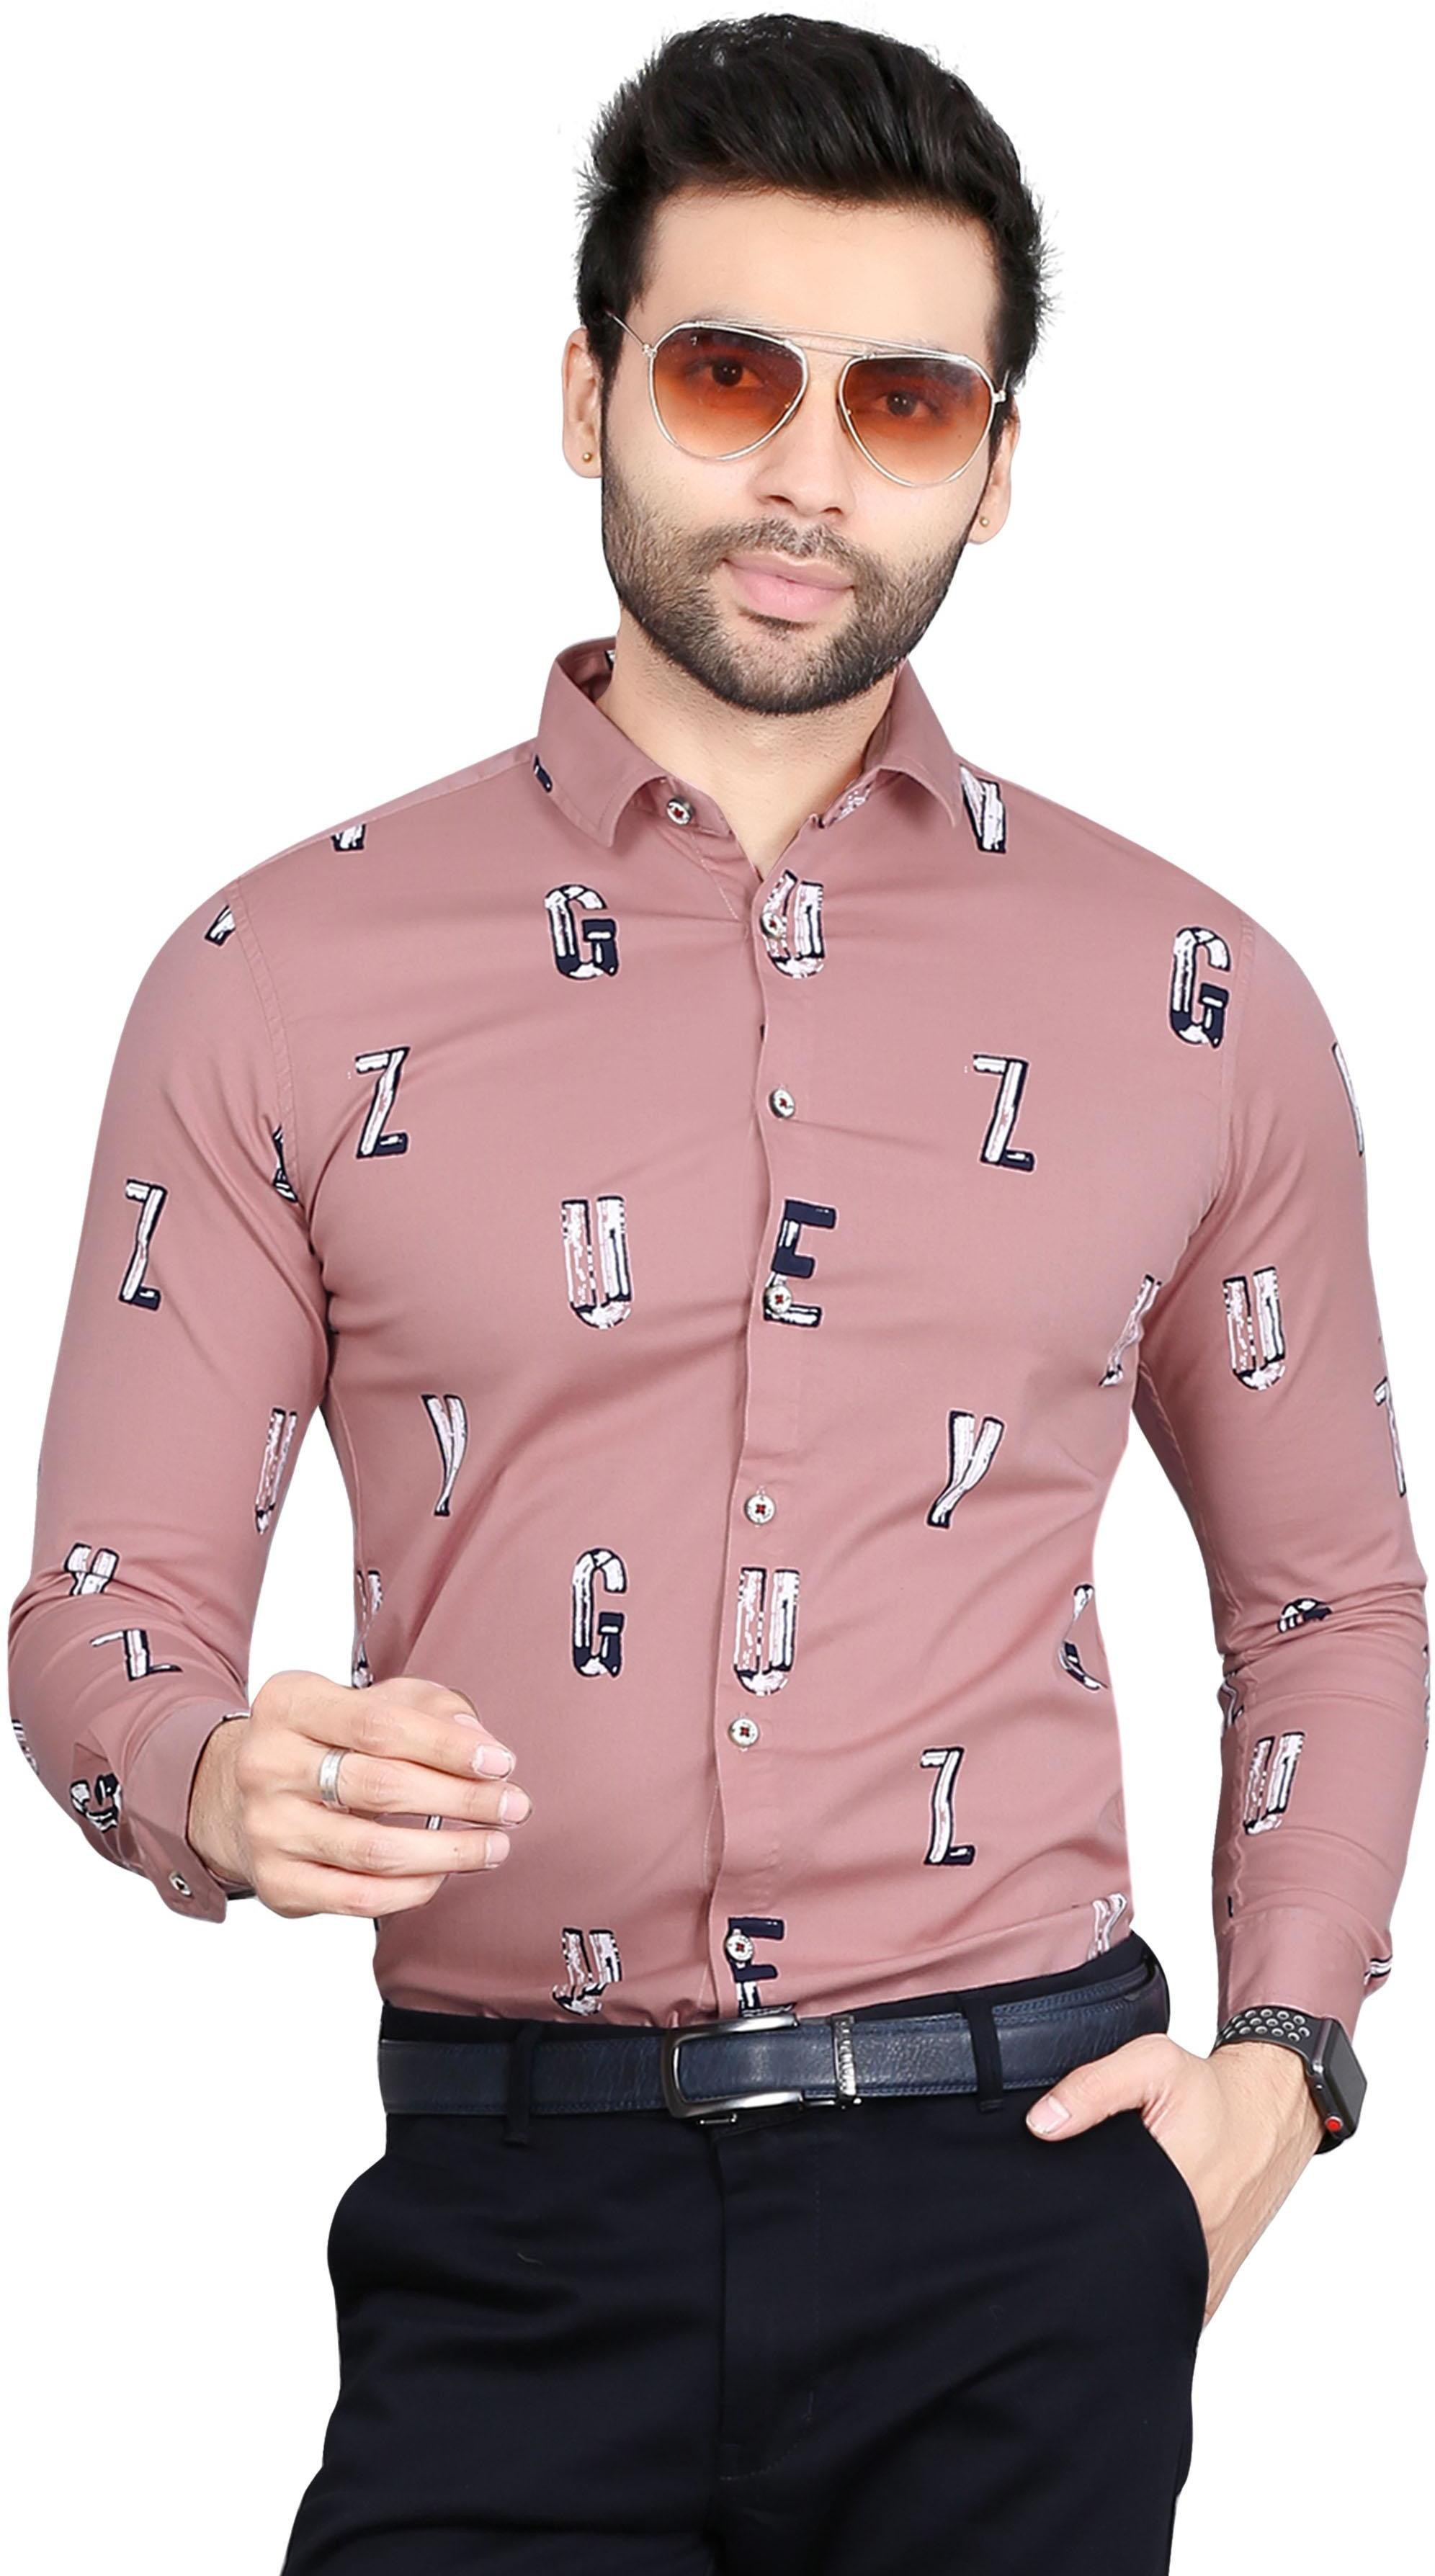 Alphabatical Printed Formal Full Sleev Pure Cotton Shirt By 5th Anfold